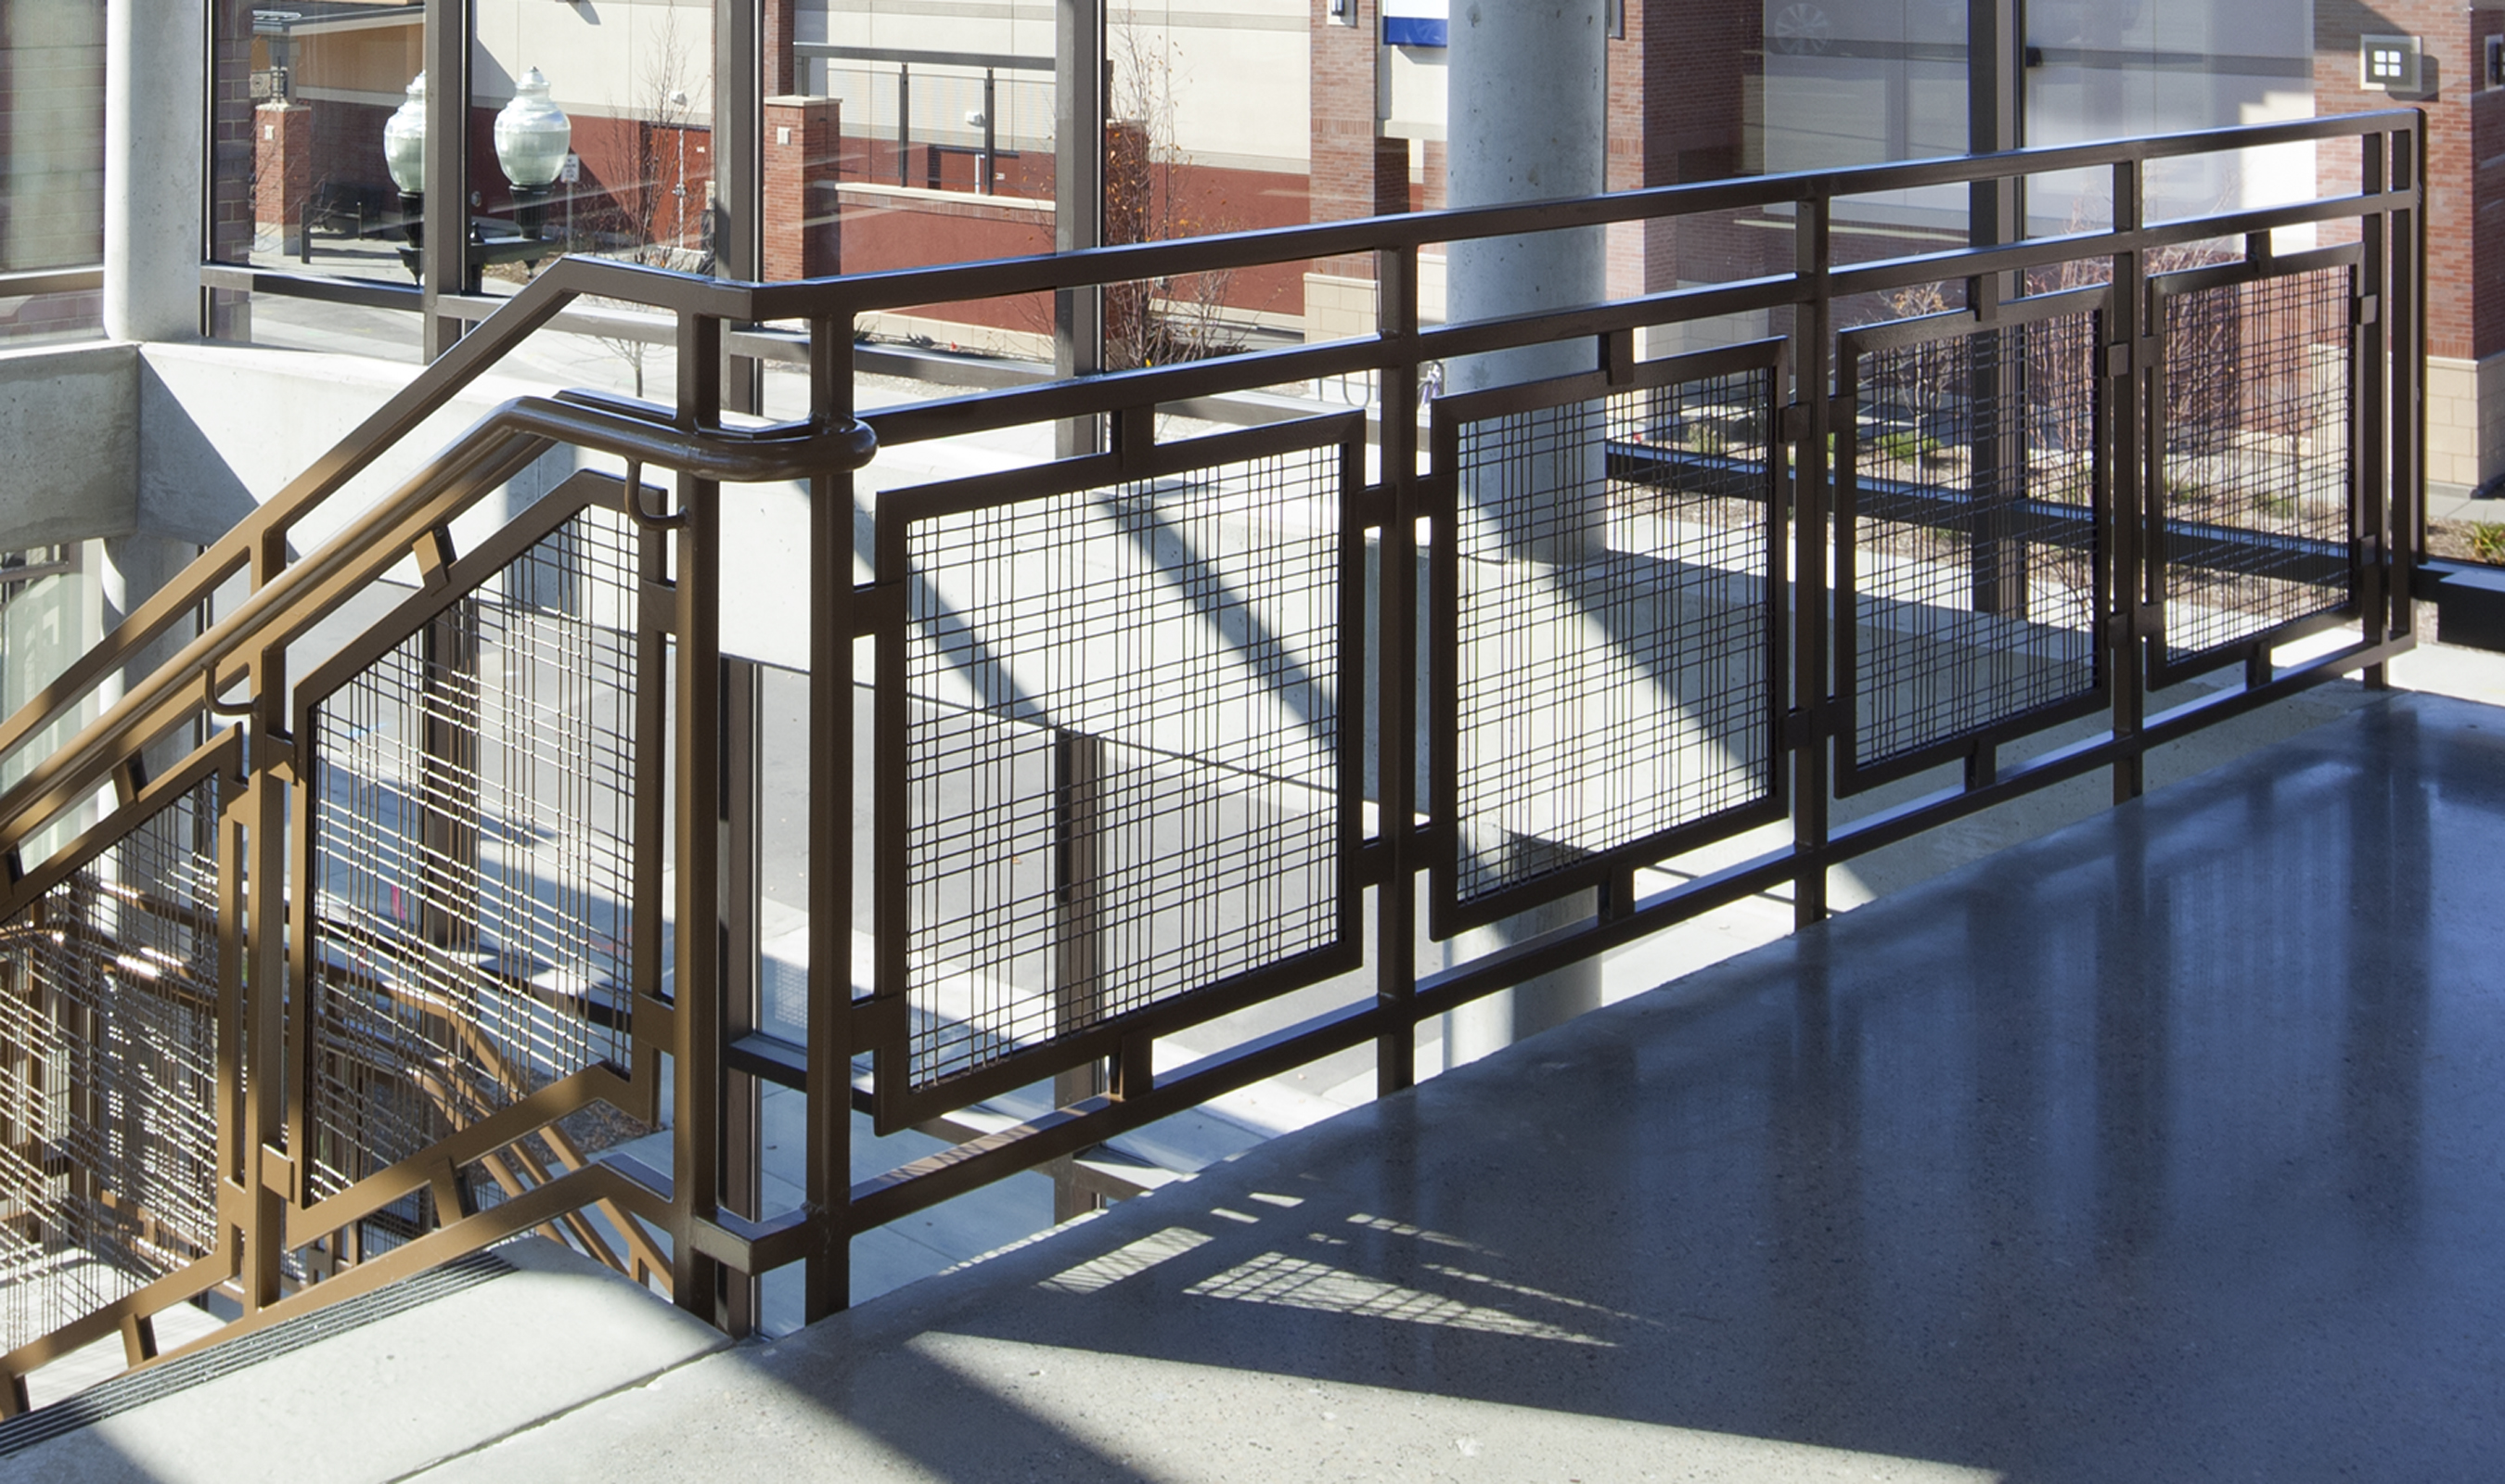 Powder-coated M44-2 woven wire mesh is used as infill panels for the interior railing.